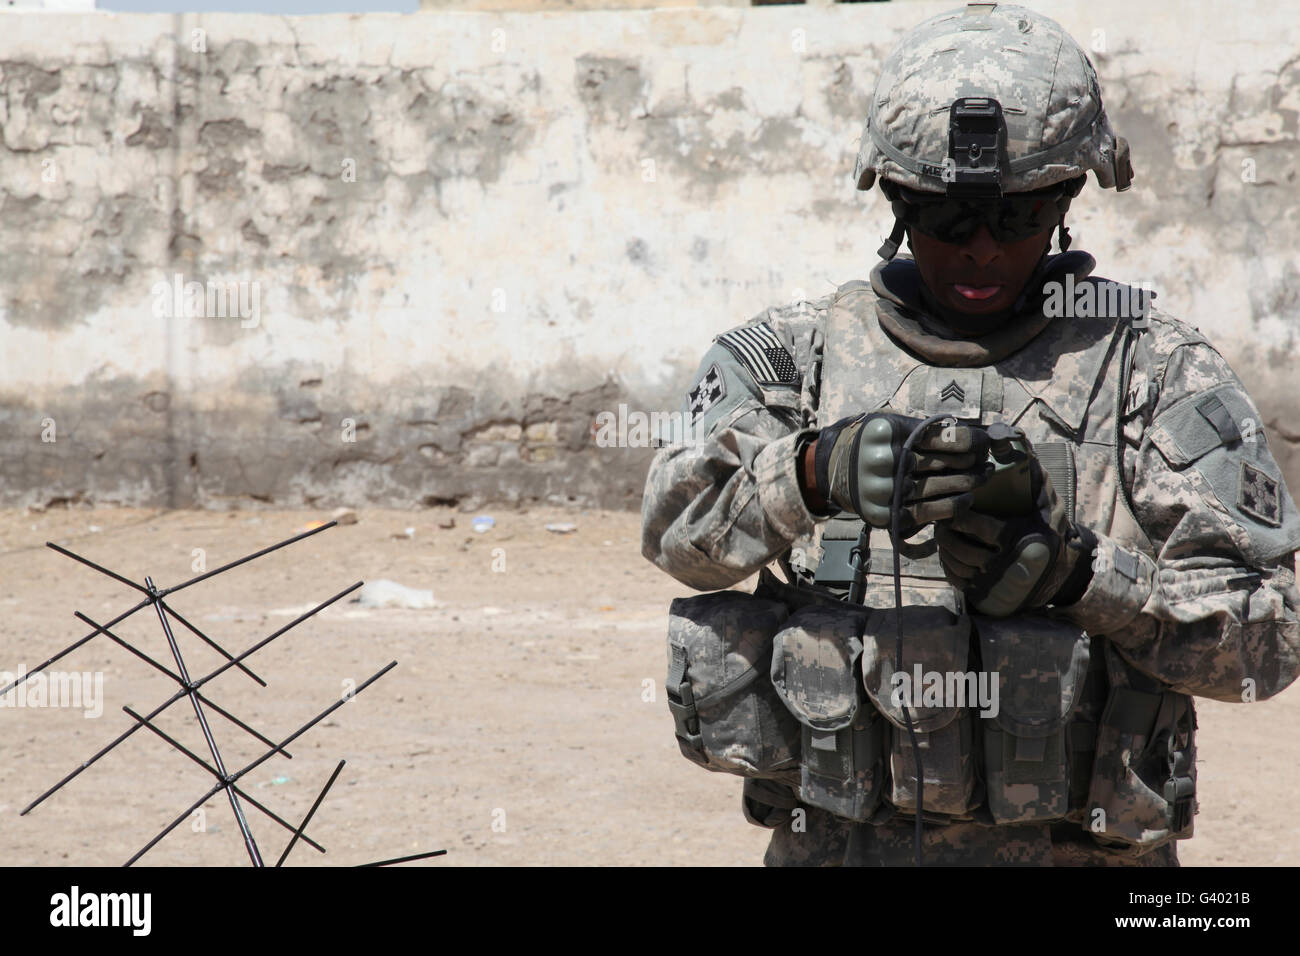 A U.S. Soldier tests a tactical satellite radio. - Stock Image